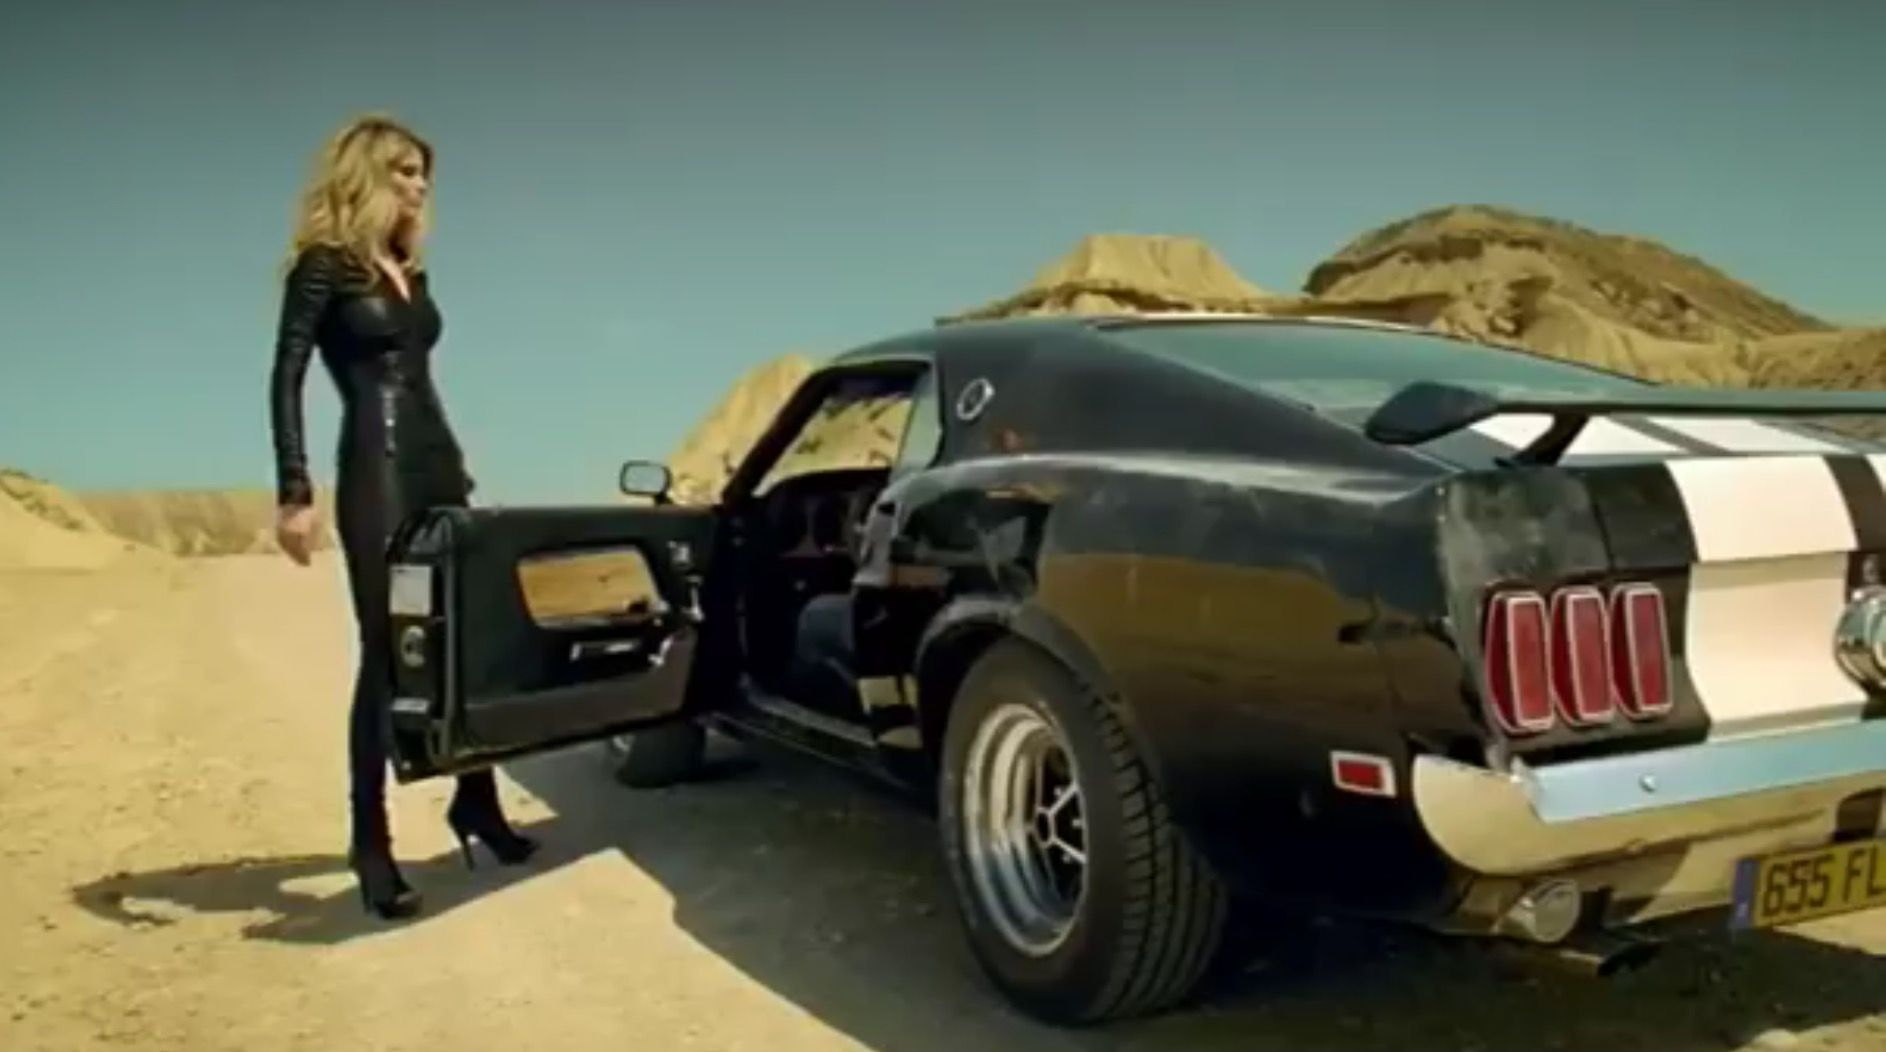 Mustang 1969 Music Video Martin Solveig I Want You Mustang